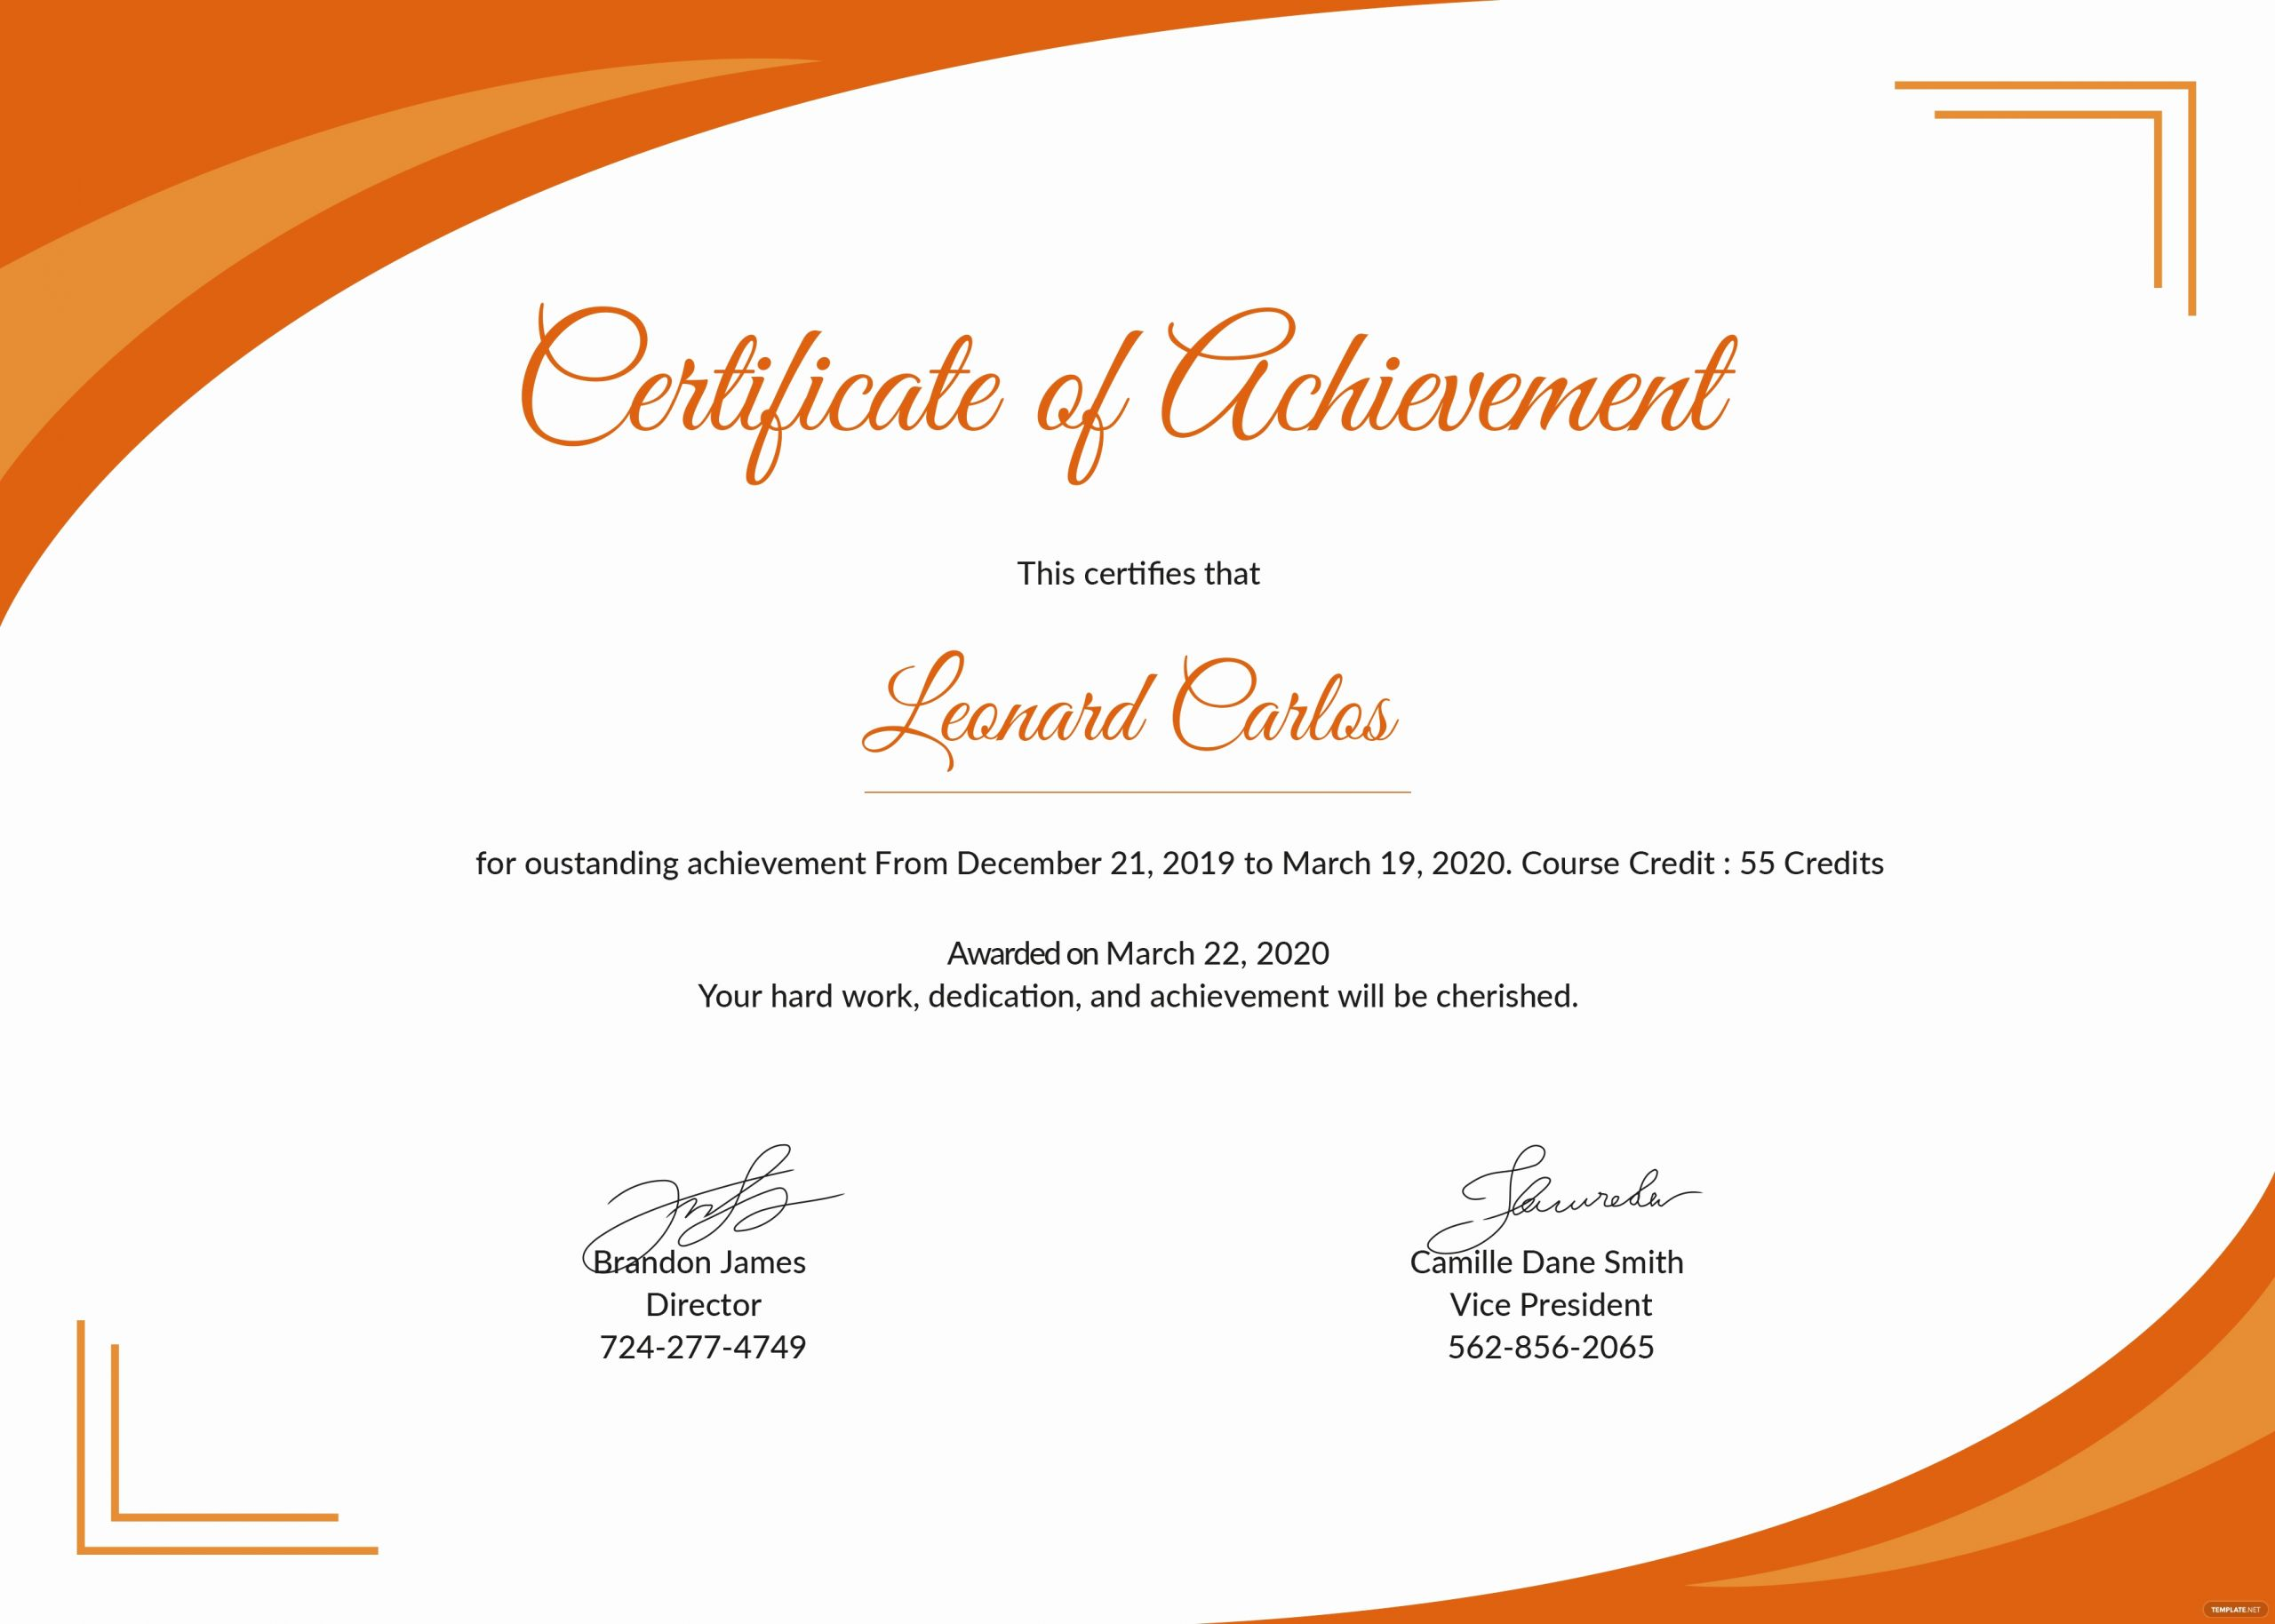 Certificate Of Achievement Template Free Inspirational Certificate Templates